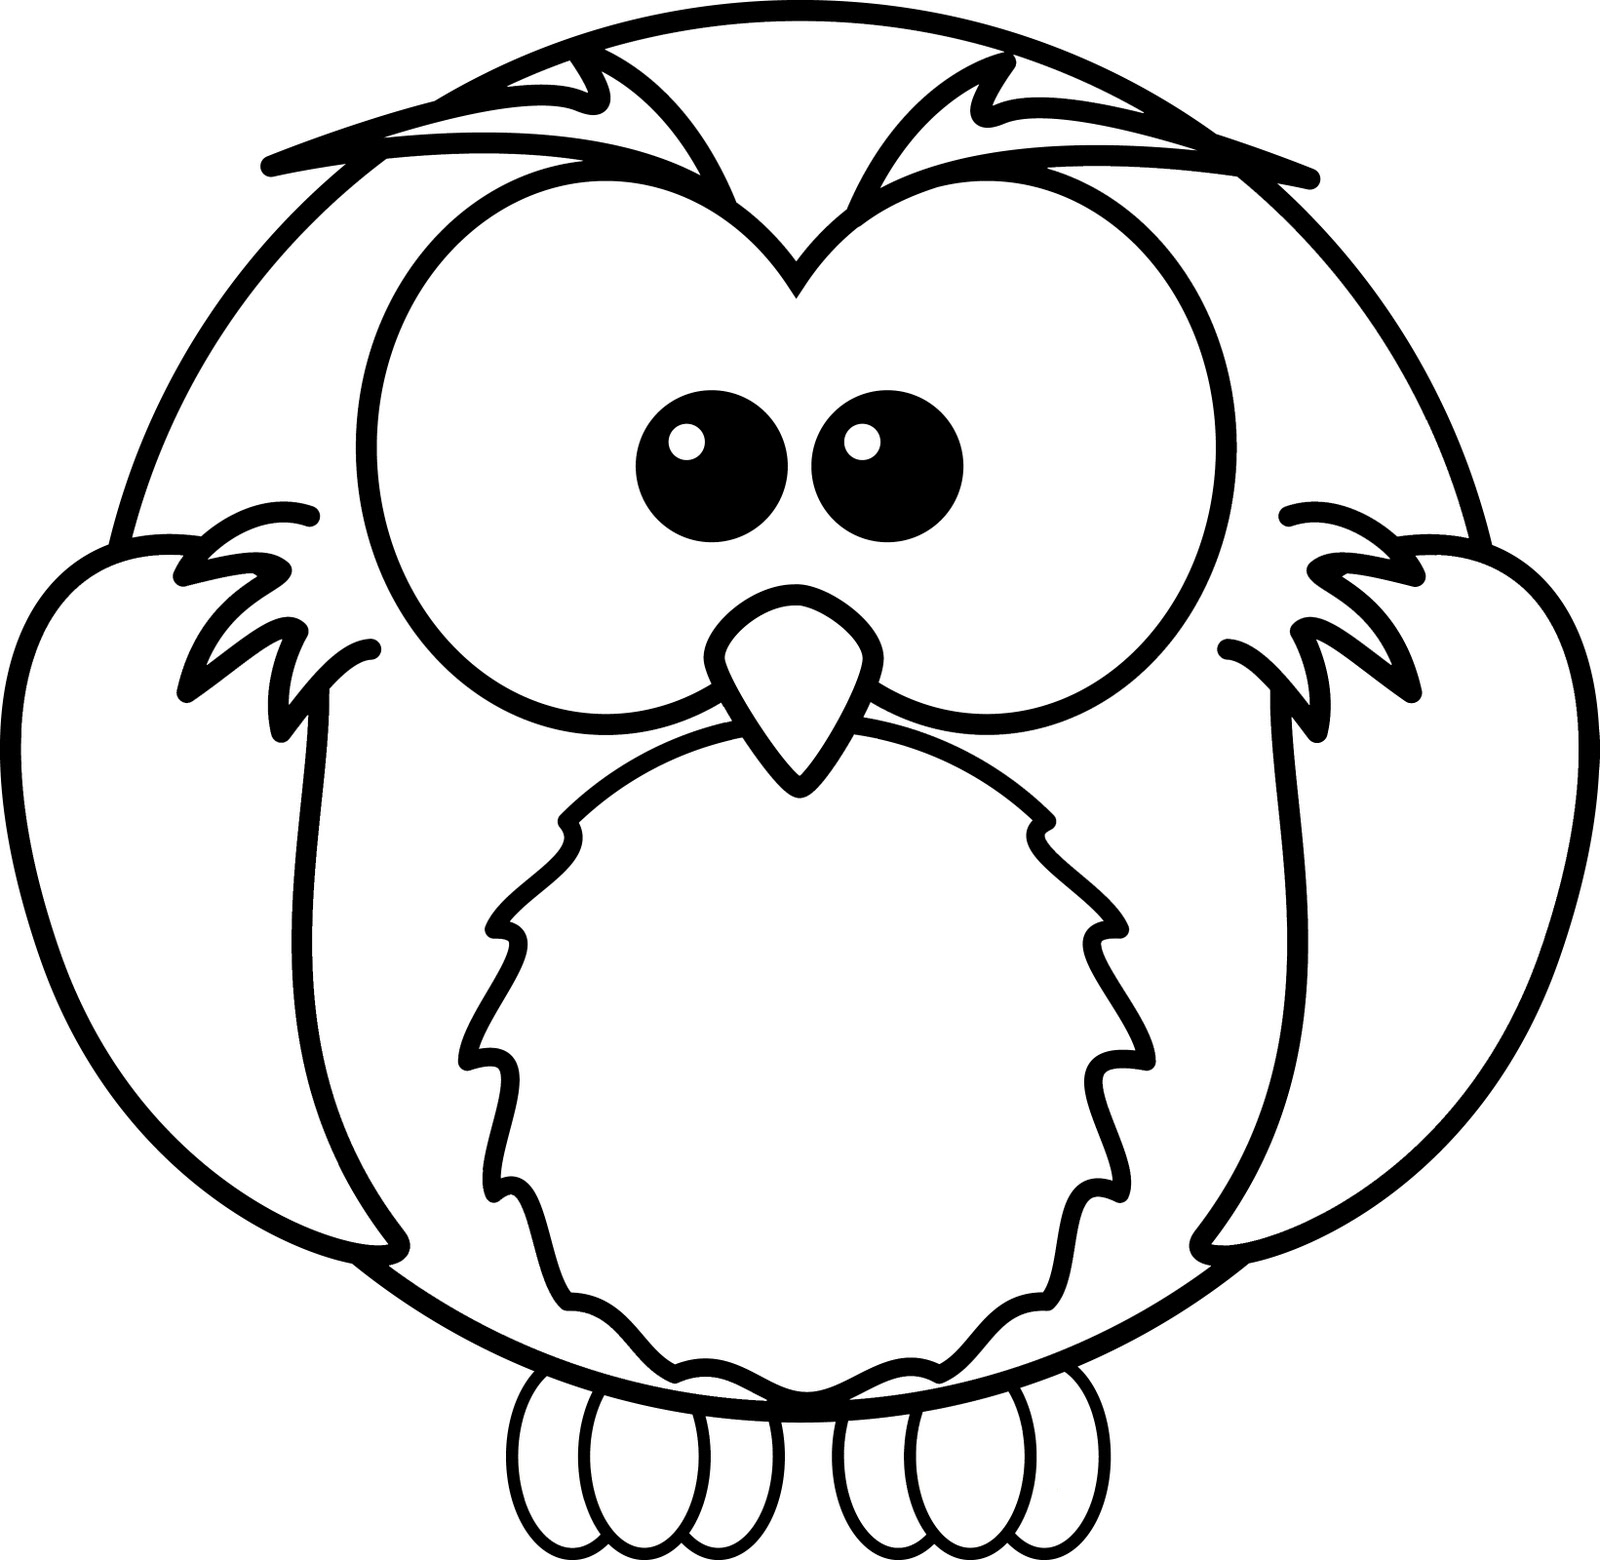 coloring owl pictures to colour owl coloring page clipart free stock photo public domain coloring colour pictures owl to